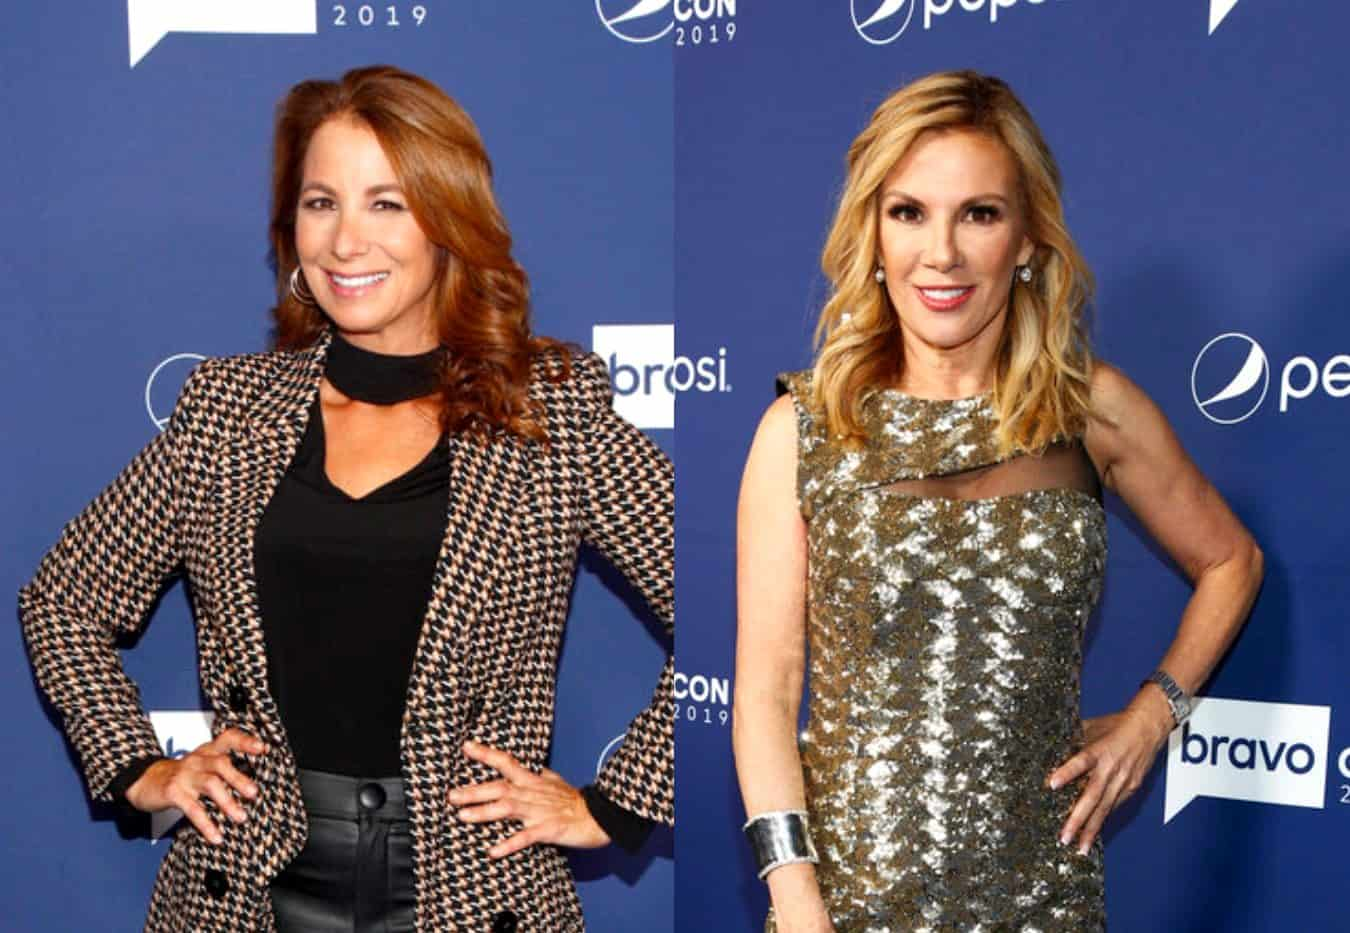 REPORT: Jill Zarin Brought to Tears After Being Snubbed by Ramona Singer at a Club as RHONY Star is Accused of Being 'Rude to Everyone'